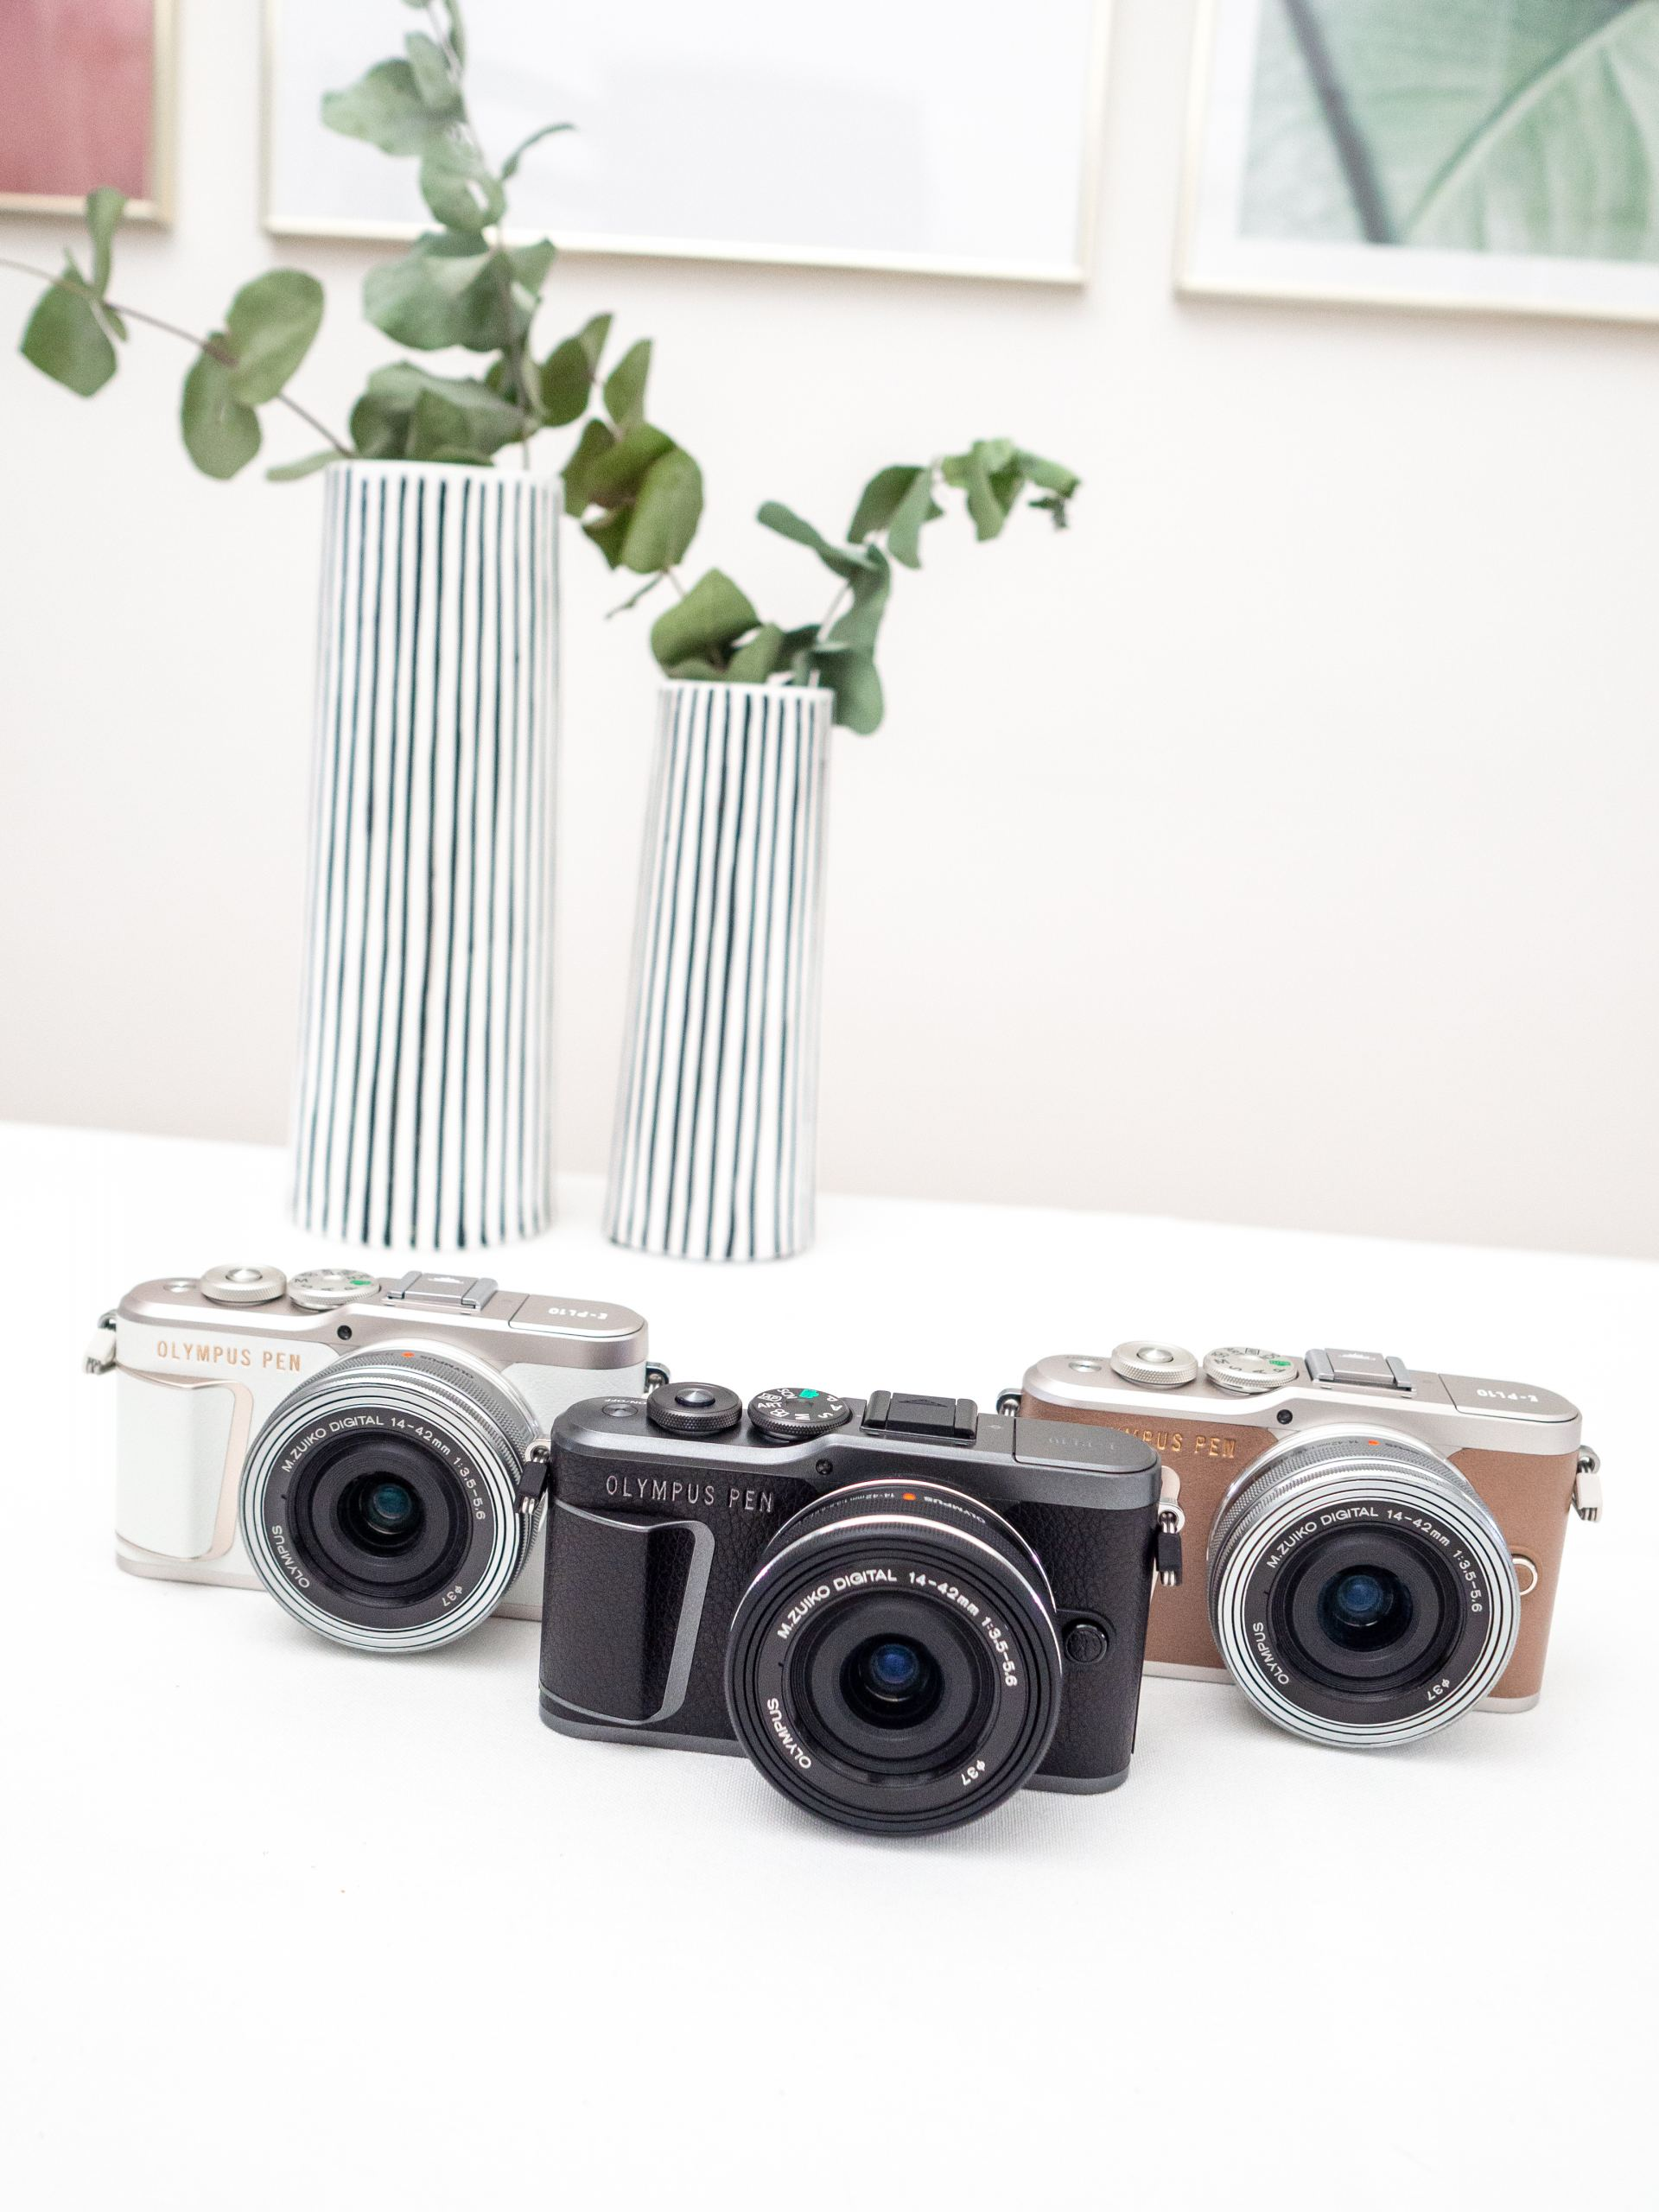 new olympus pen epl10 camera review (10)